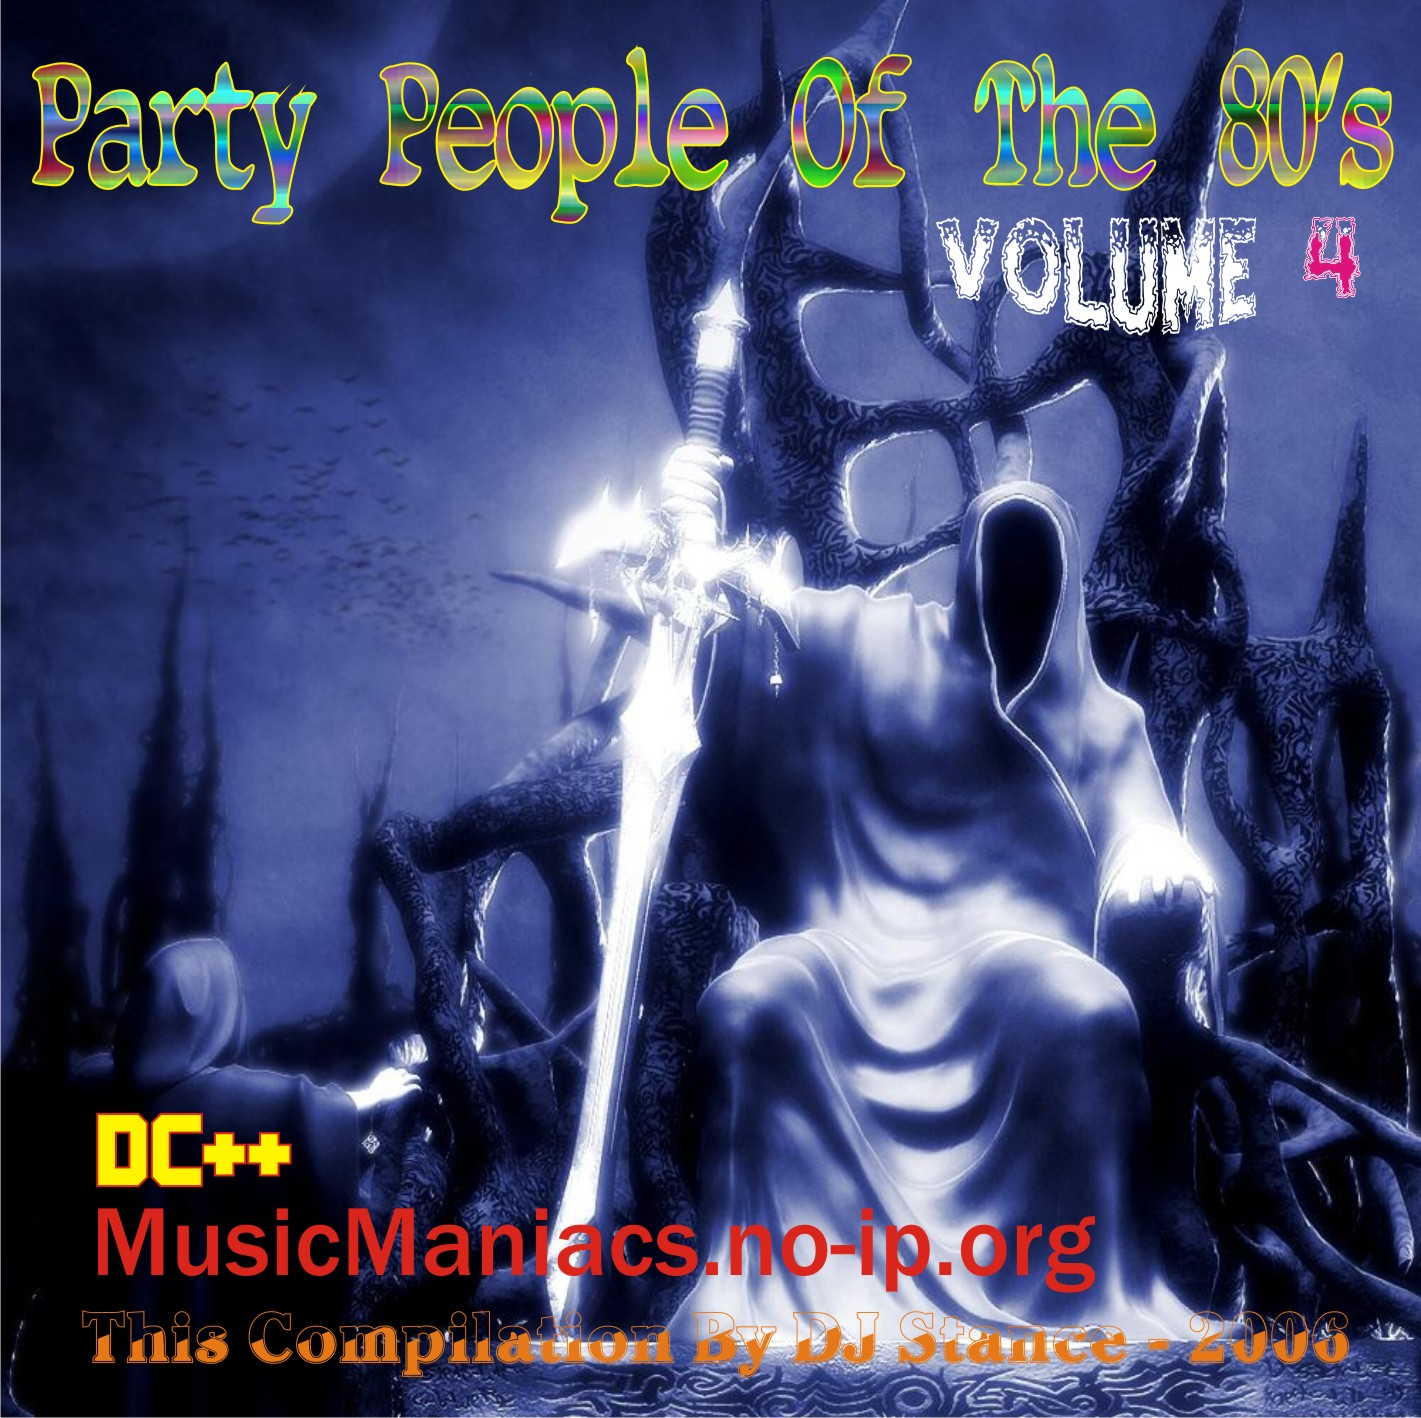 Party People Of The 80's Vol.04